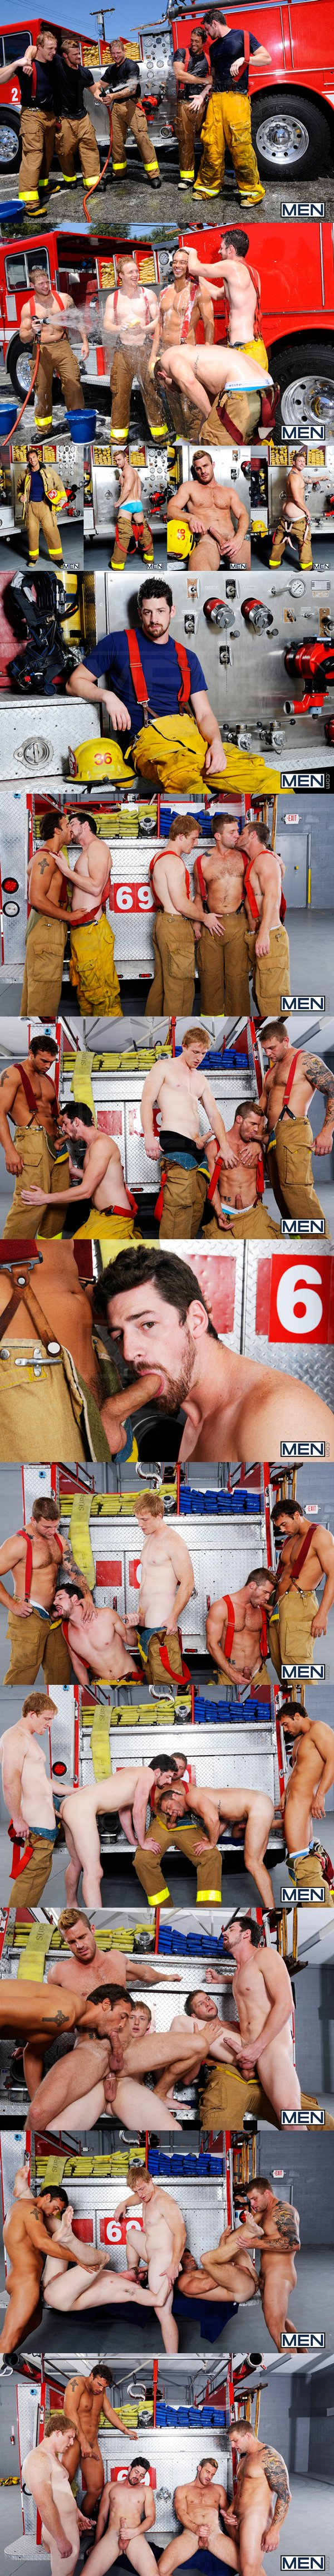 firemen themed fivesome orgy by Colby Jansen, Rocco Reed, Landon Conrad, Andrew Stark & Charlie Roberts at Men.com 02